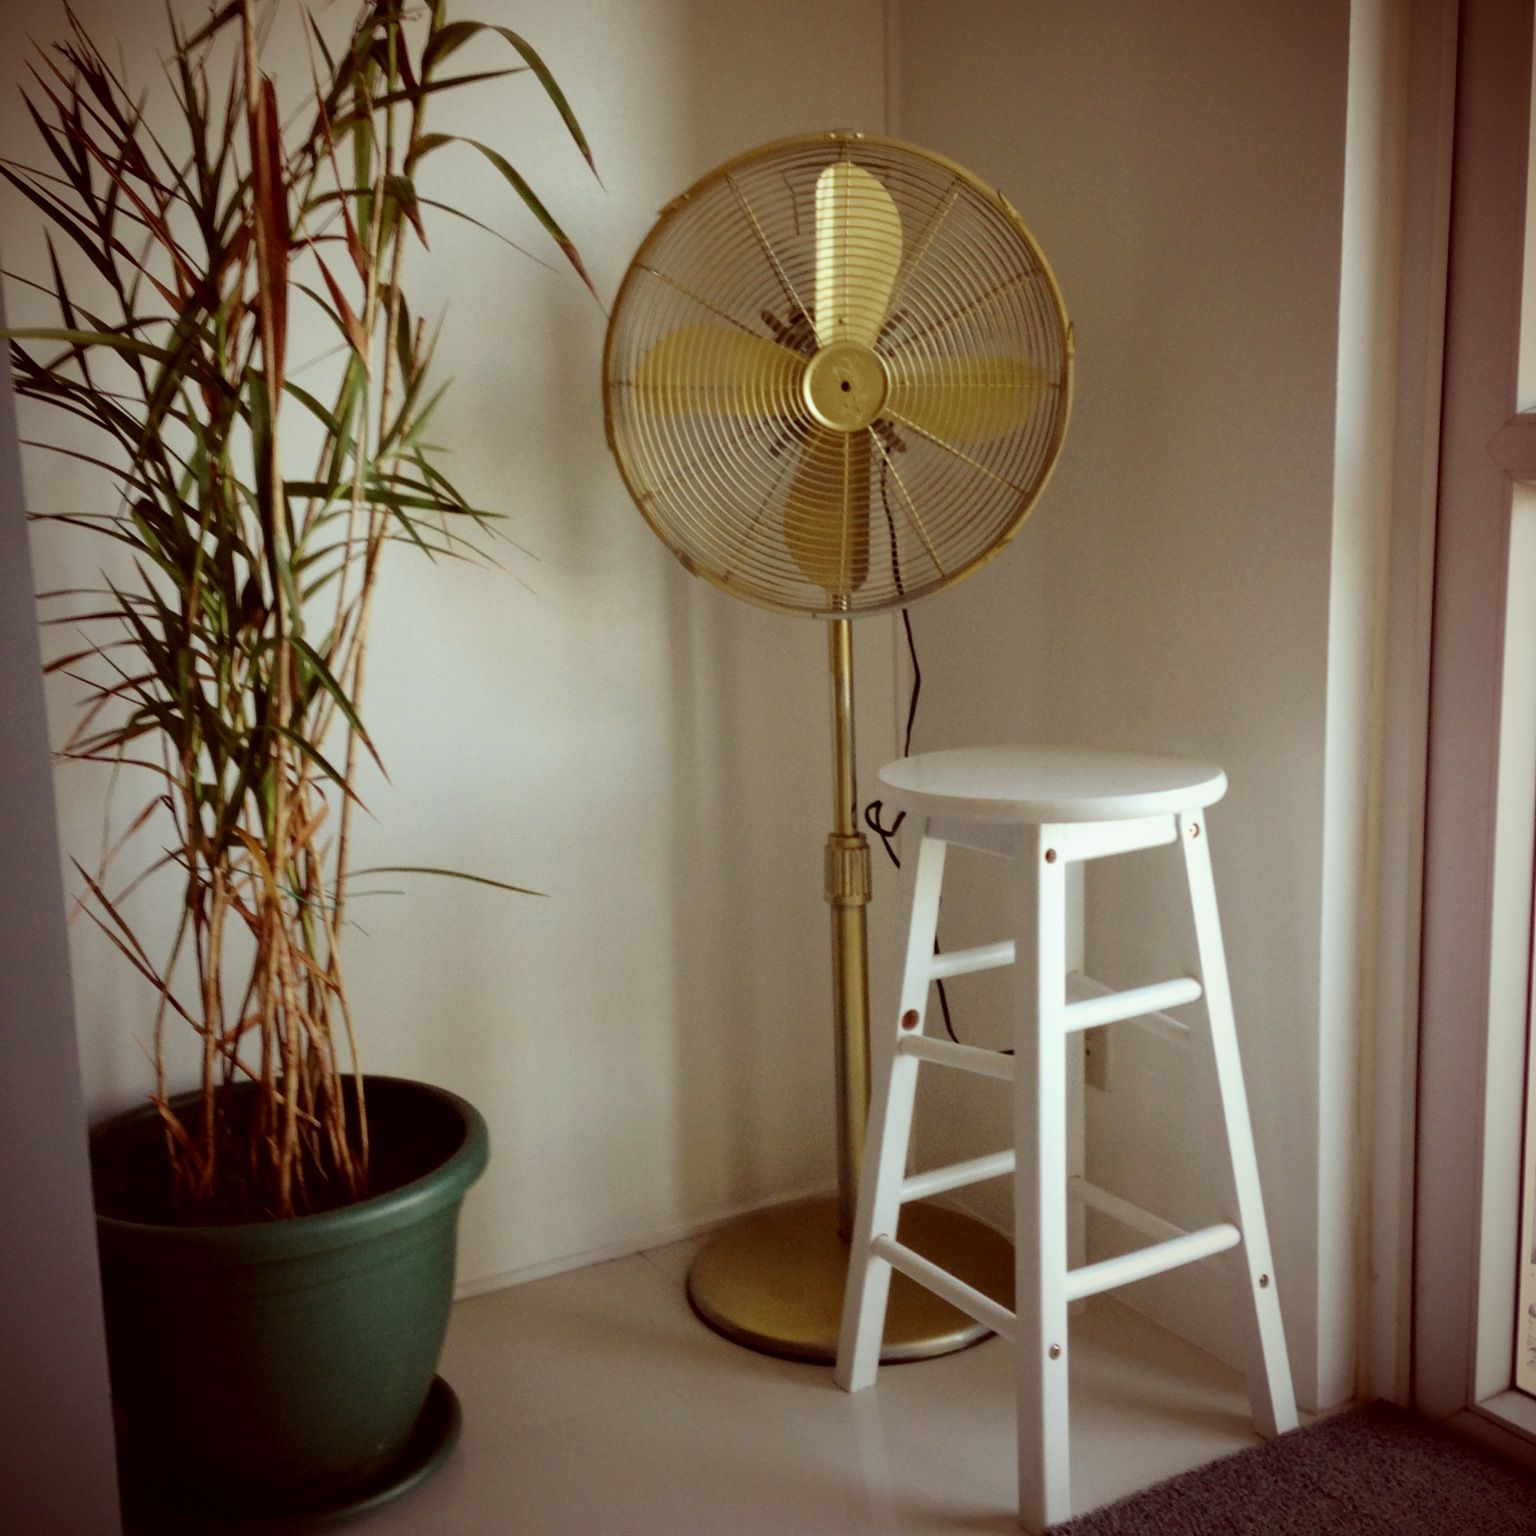 Pin By Amanda Speer On Projects Stand Fan Bedroom Fan Diy Fan